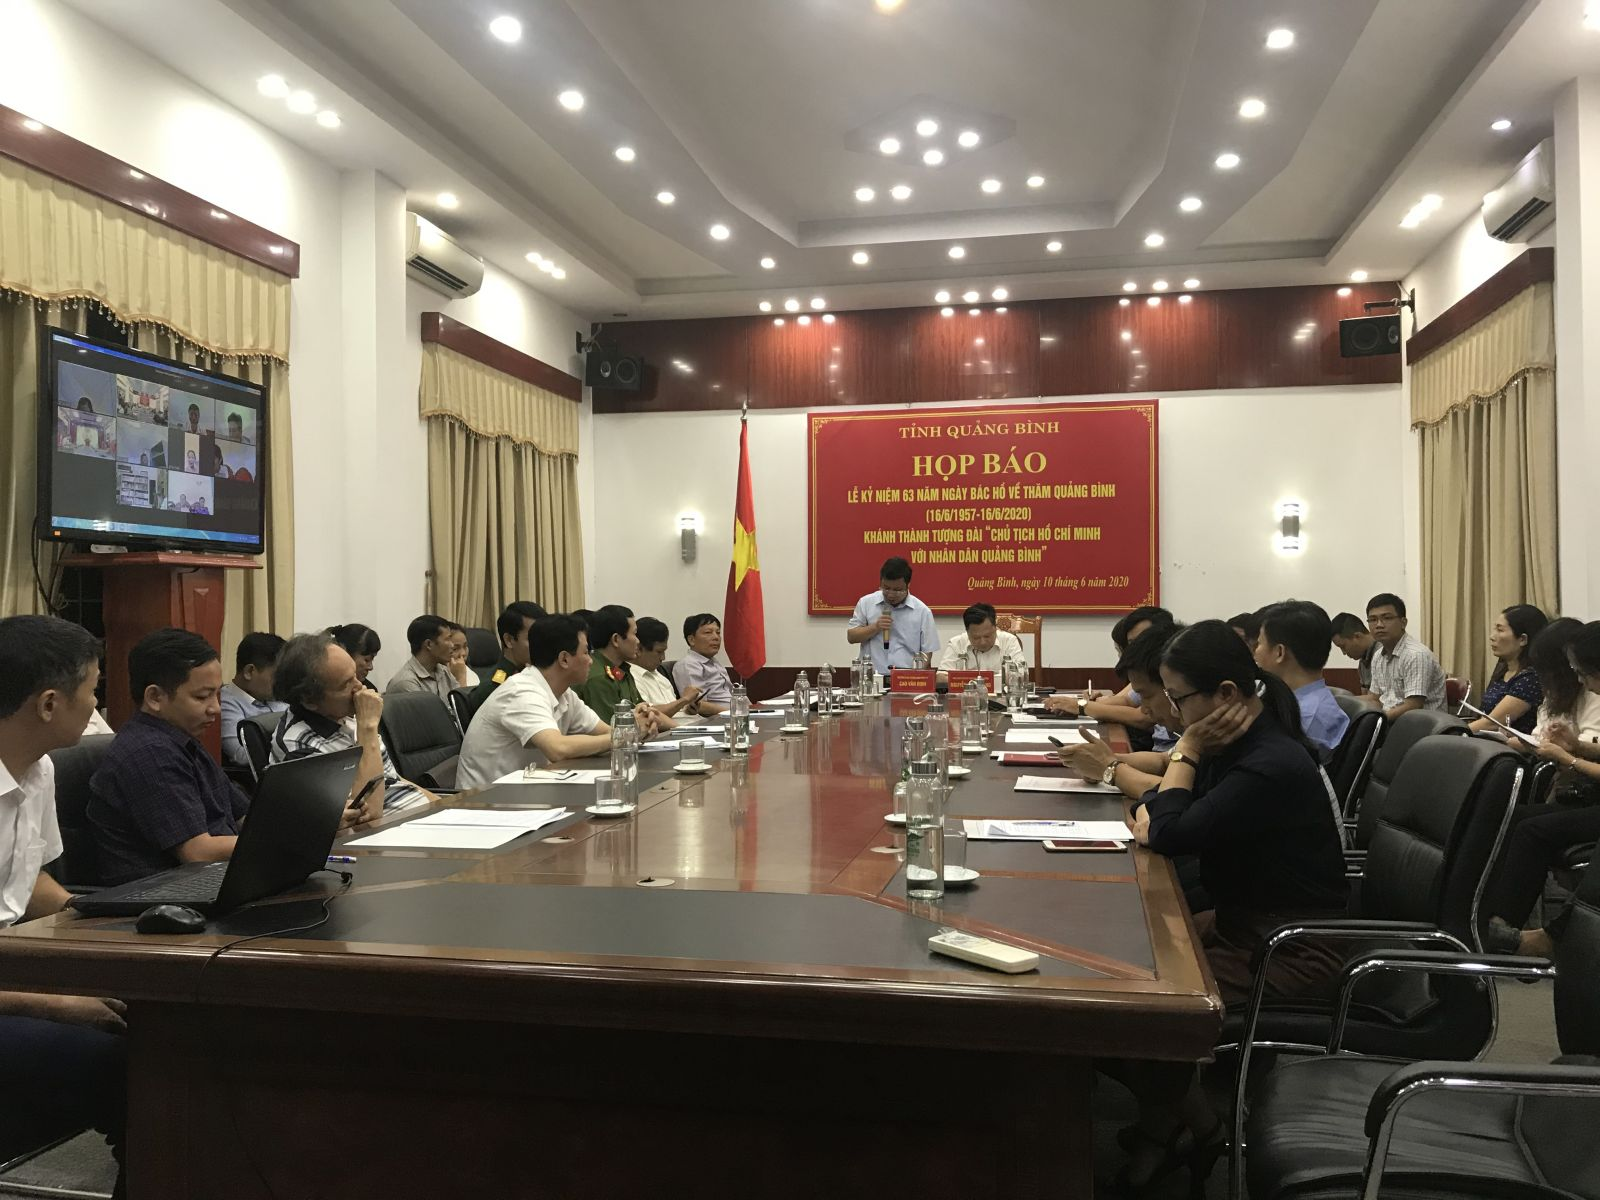 Quang Binh inaugurates Uncle Ho Statue to welcome Party Congresses